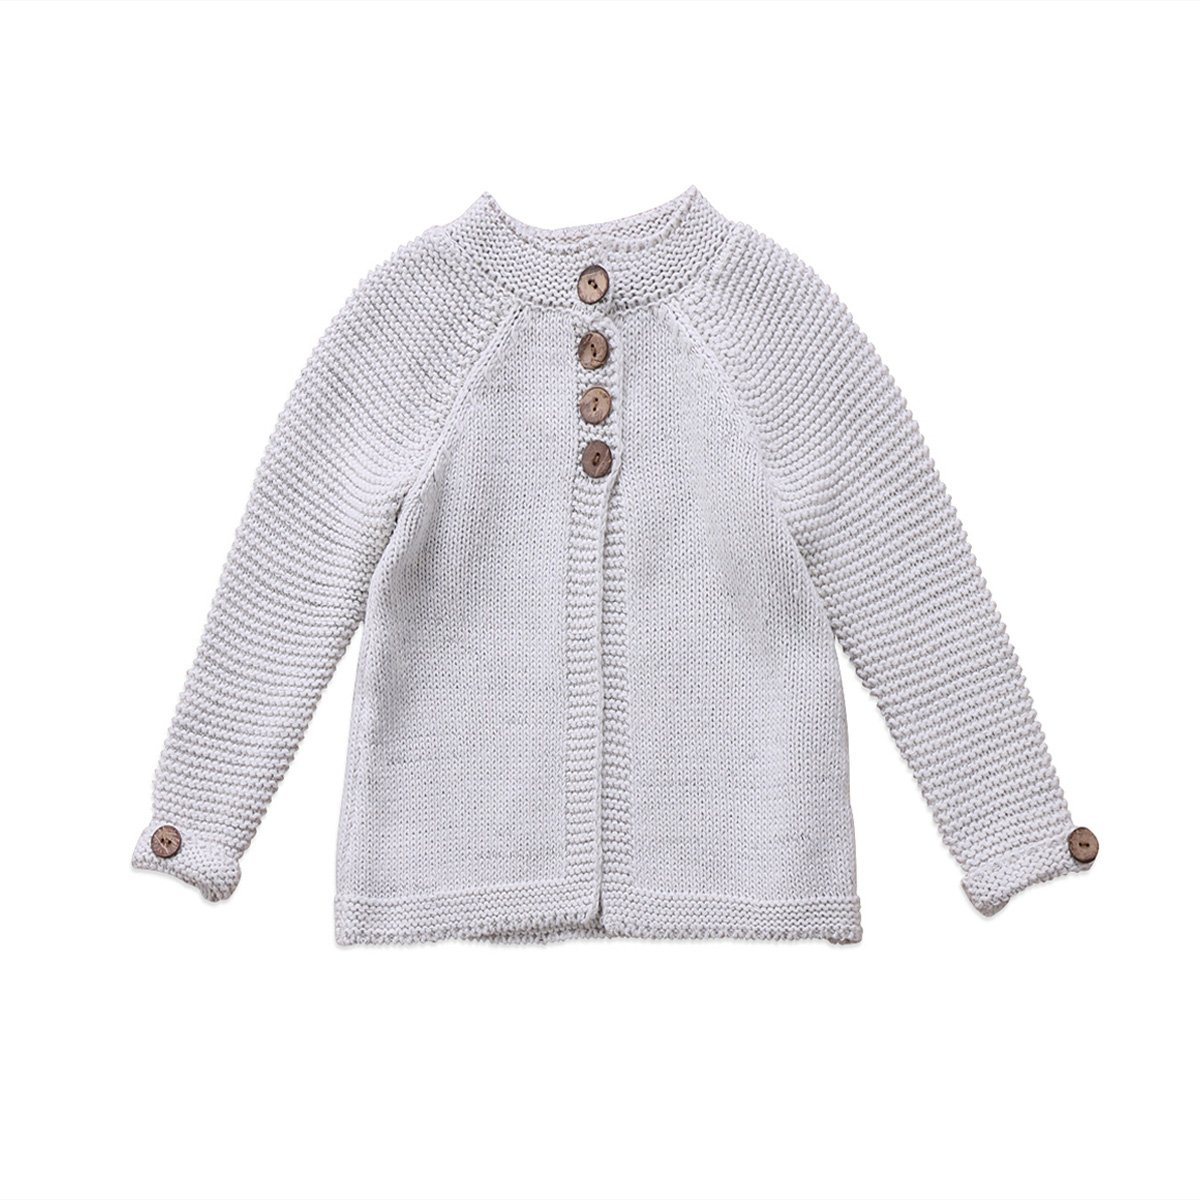 KIDSA 1-8T Toddler Baby Little Big Girls Kids Long Sleeve Knit Cardigan Sweaters Fall Winter Clothing Warm Thick Jacket Coat